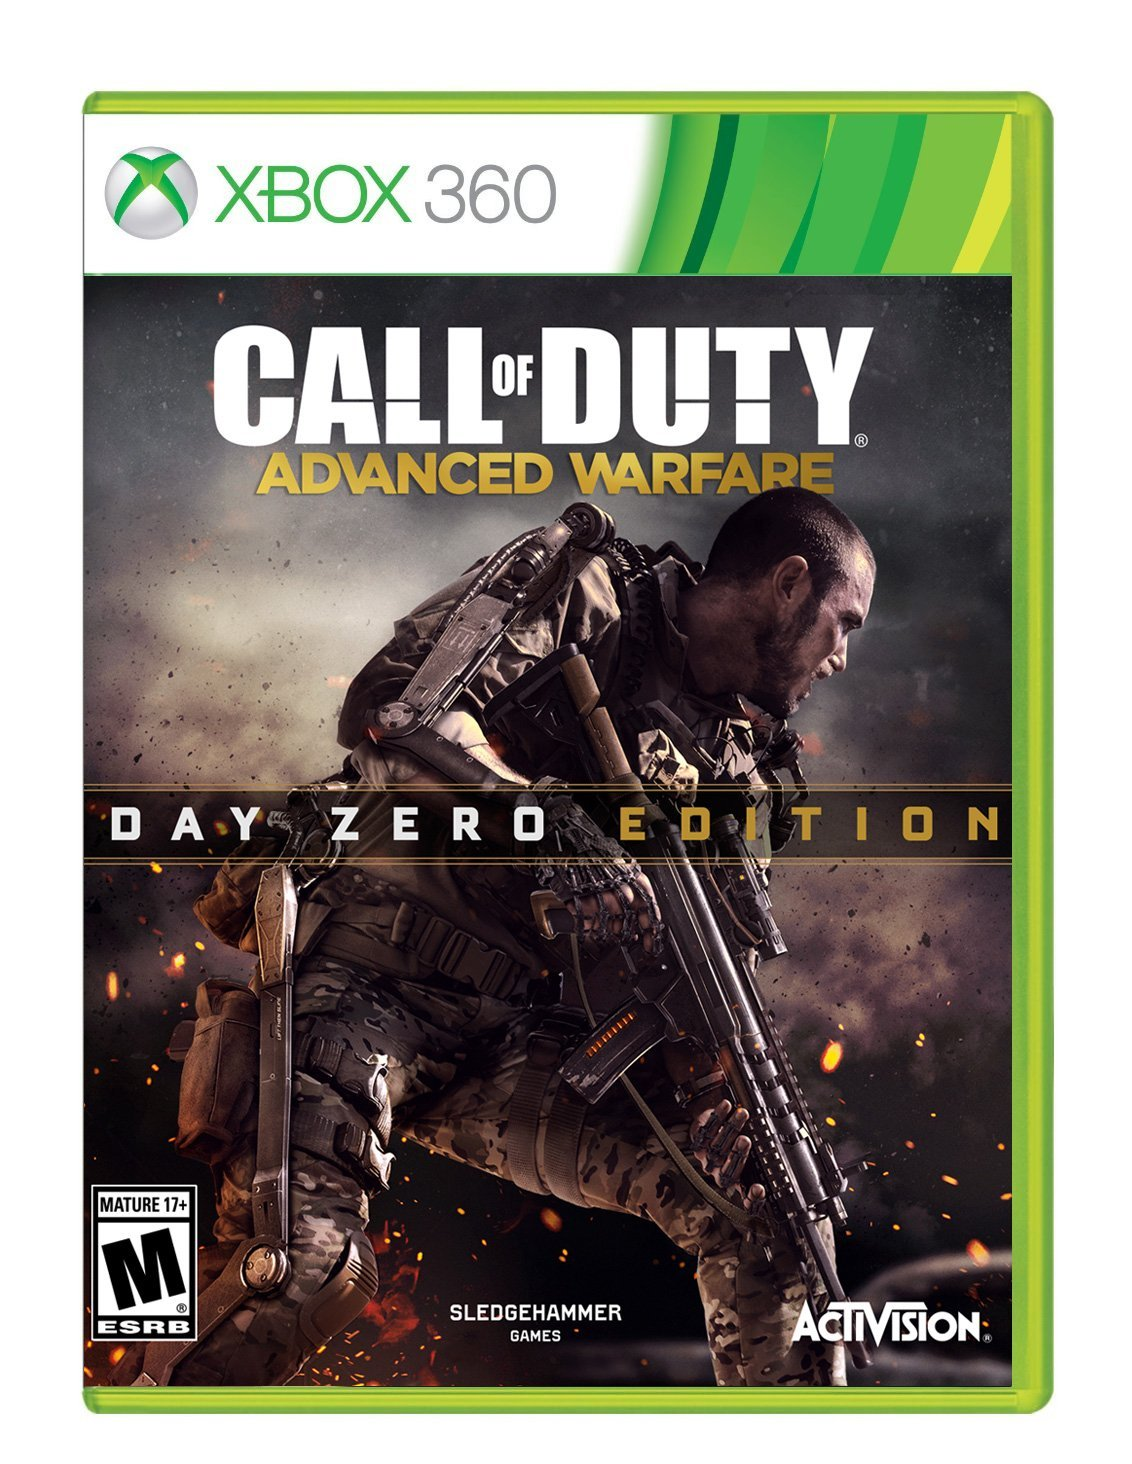 XBox 360 COD Call of Duty Advanced Warfare Regiao Livre